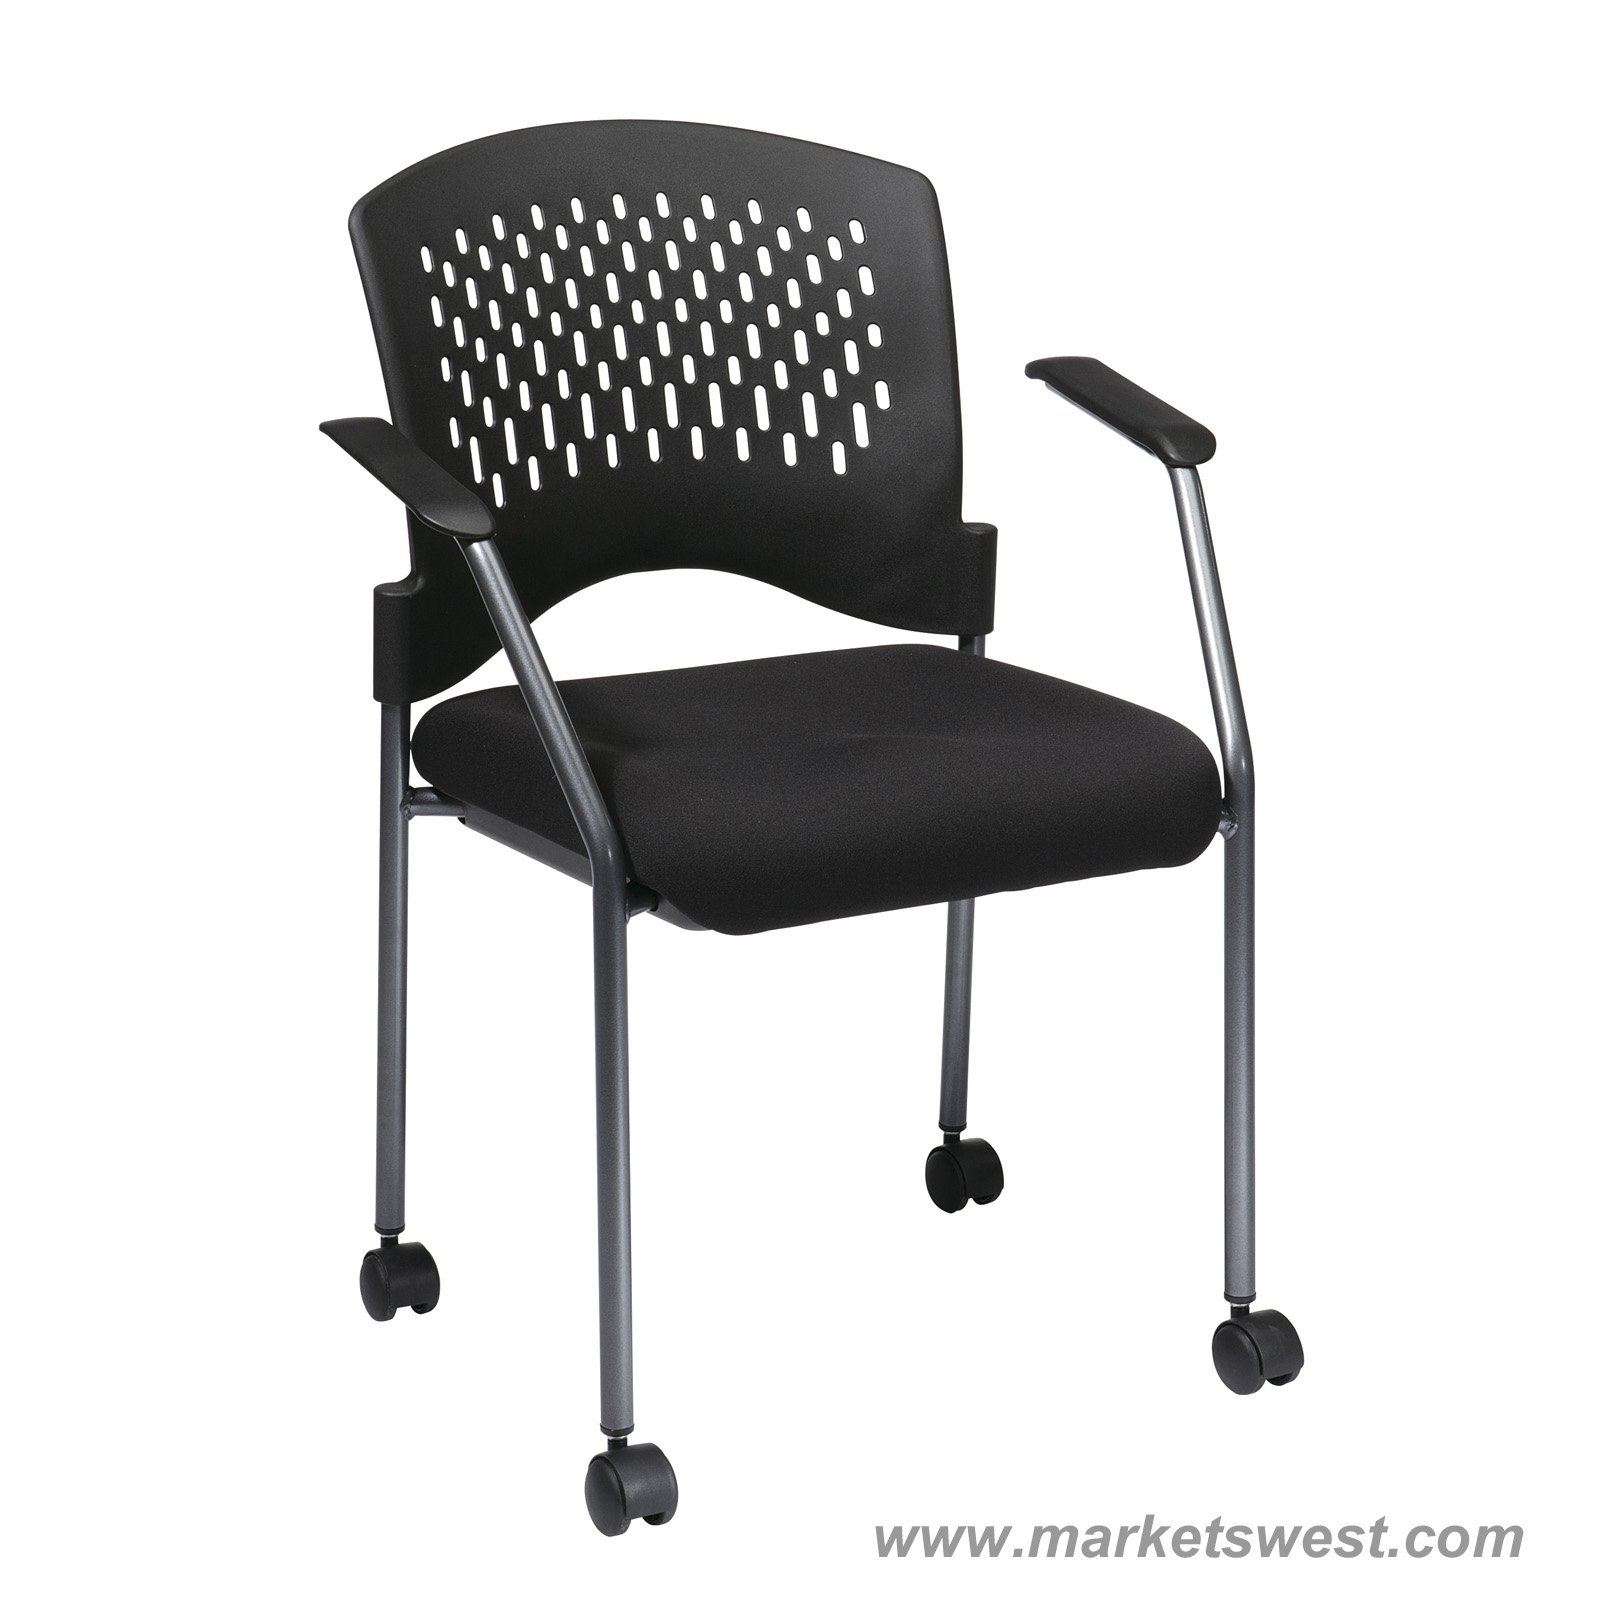 Pro Line II Titanium Finish Rolling Black Visitors Chair With Casters Arms  And Ventilated Plastic Wrap Around Back